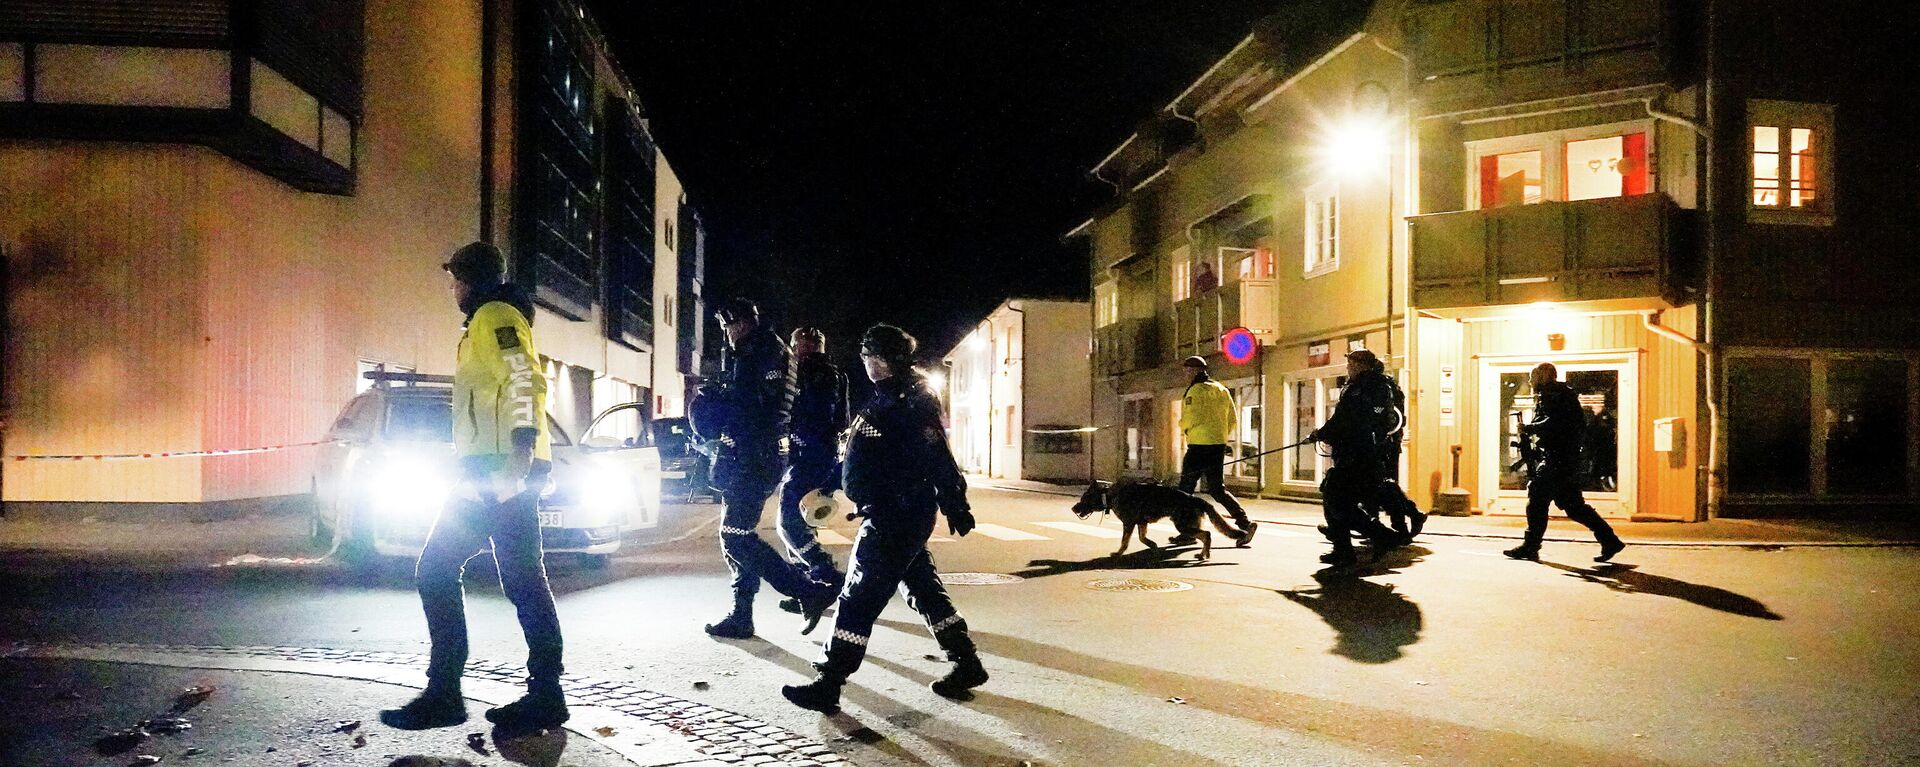 Police officers investigate after several people were killed and others were injured by a man using a bow and arrows to carry out attacks, in Kongsberg, Norway, October 13, 2021 - Sputnik International, 1920, 14.10.2021